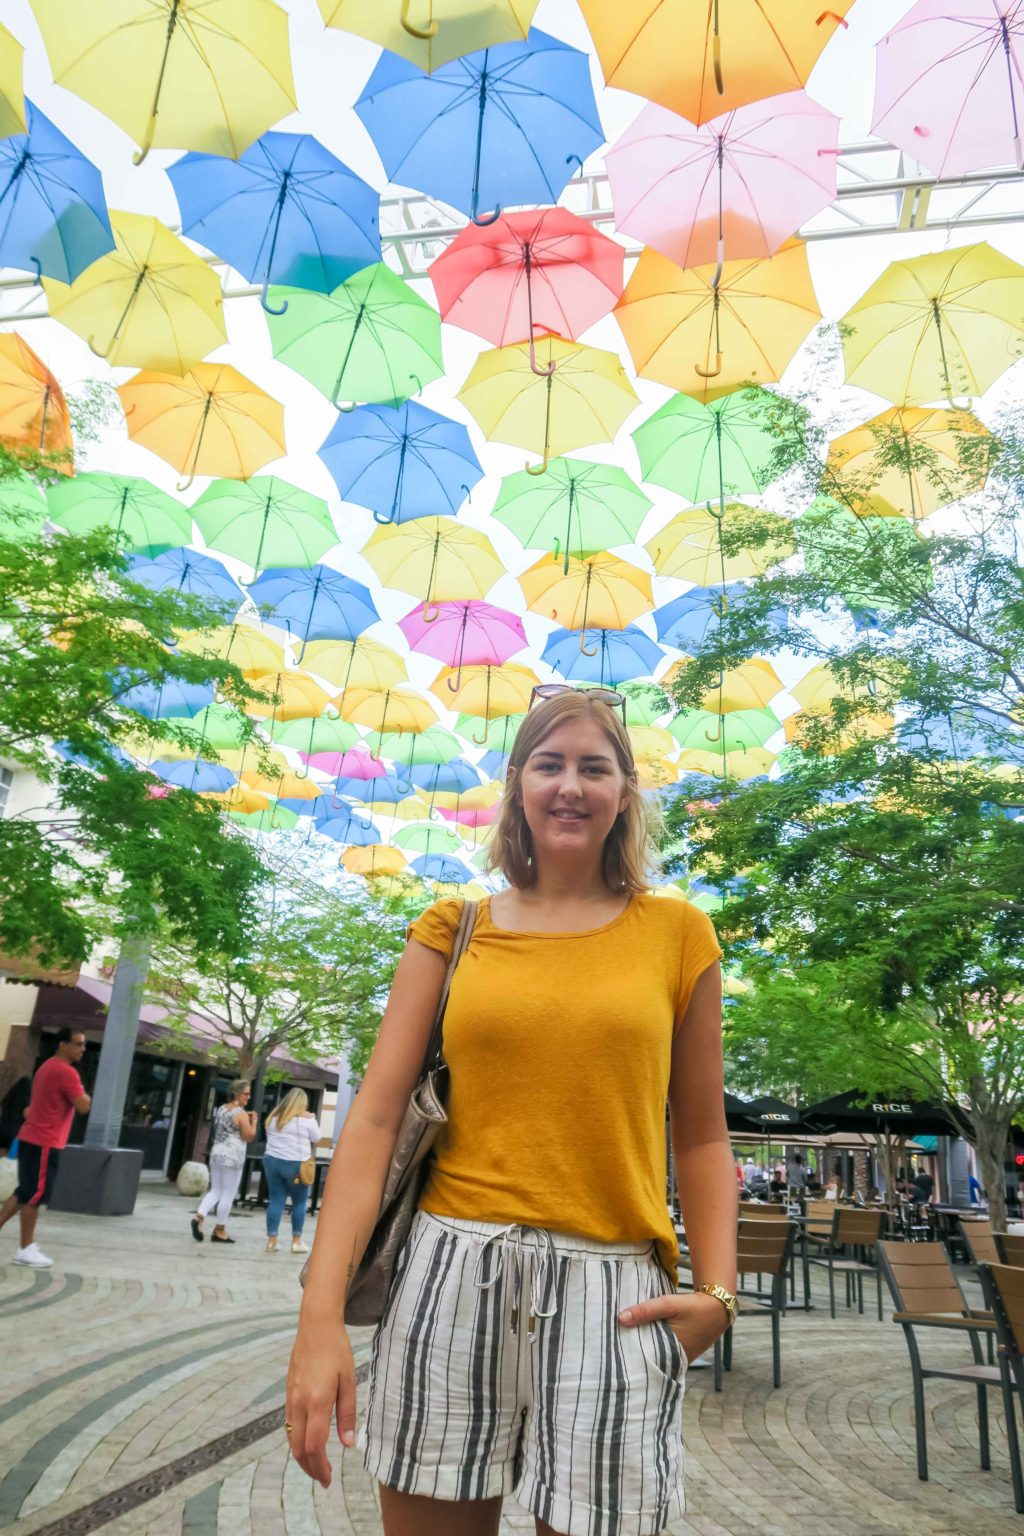 Rosie Andre. Travel Blog. Umbrella Sky, Coral Gables. USA. (Miami, Florida, wanderlust, travel, explore, globe, world, earth, Giralda Plaza)